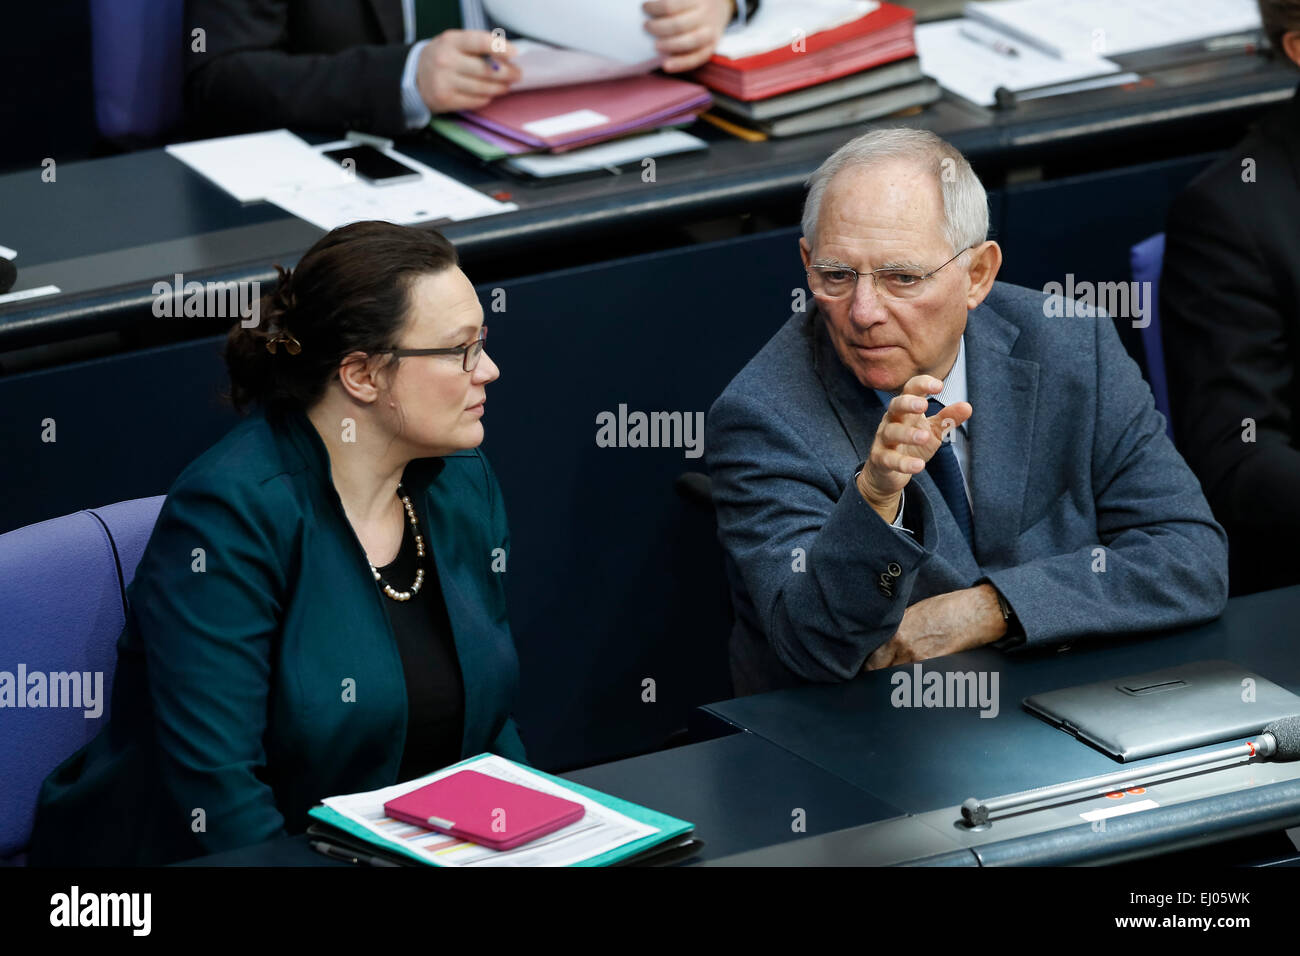 Berlin, Germany. 19th Mar, 2015. Delivery of a governmental declaration by the German Chancellor Angela Merkel in the Bundestag on March 19, 2015 in Berlin, Germany. / Picture: Andrea Nahles (SPD), German Minister of Labour and Social Affairs, and Wolfgang SchŠuble (CDU), German Minister of Finance. Credit:  Reynaldo Chaib Paganelli/Alamy Live News Stock Photo